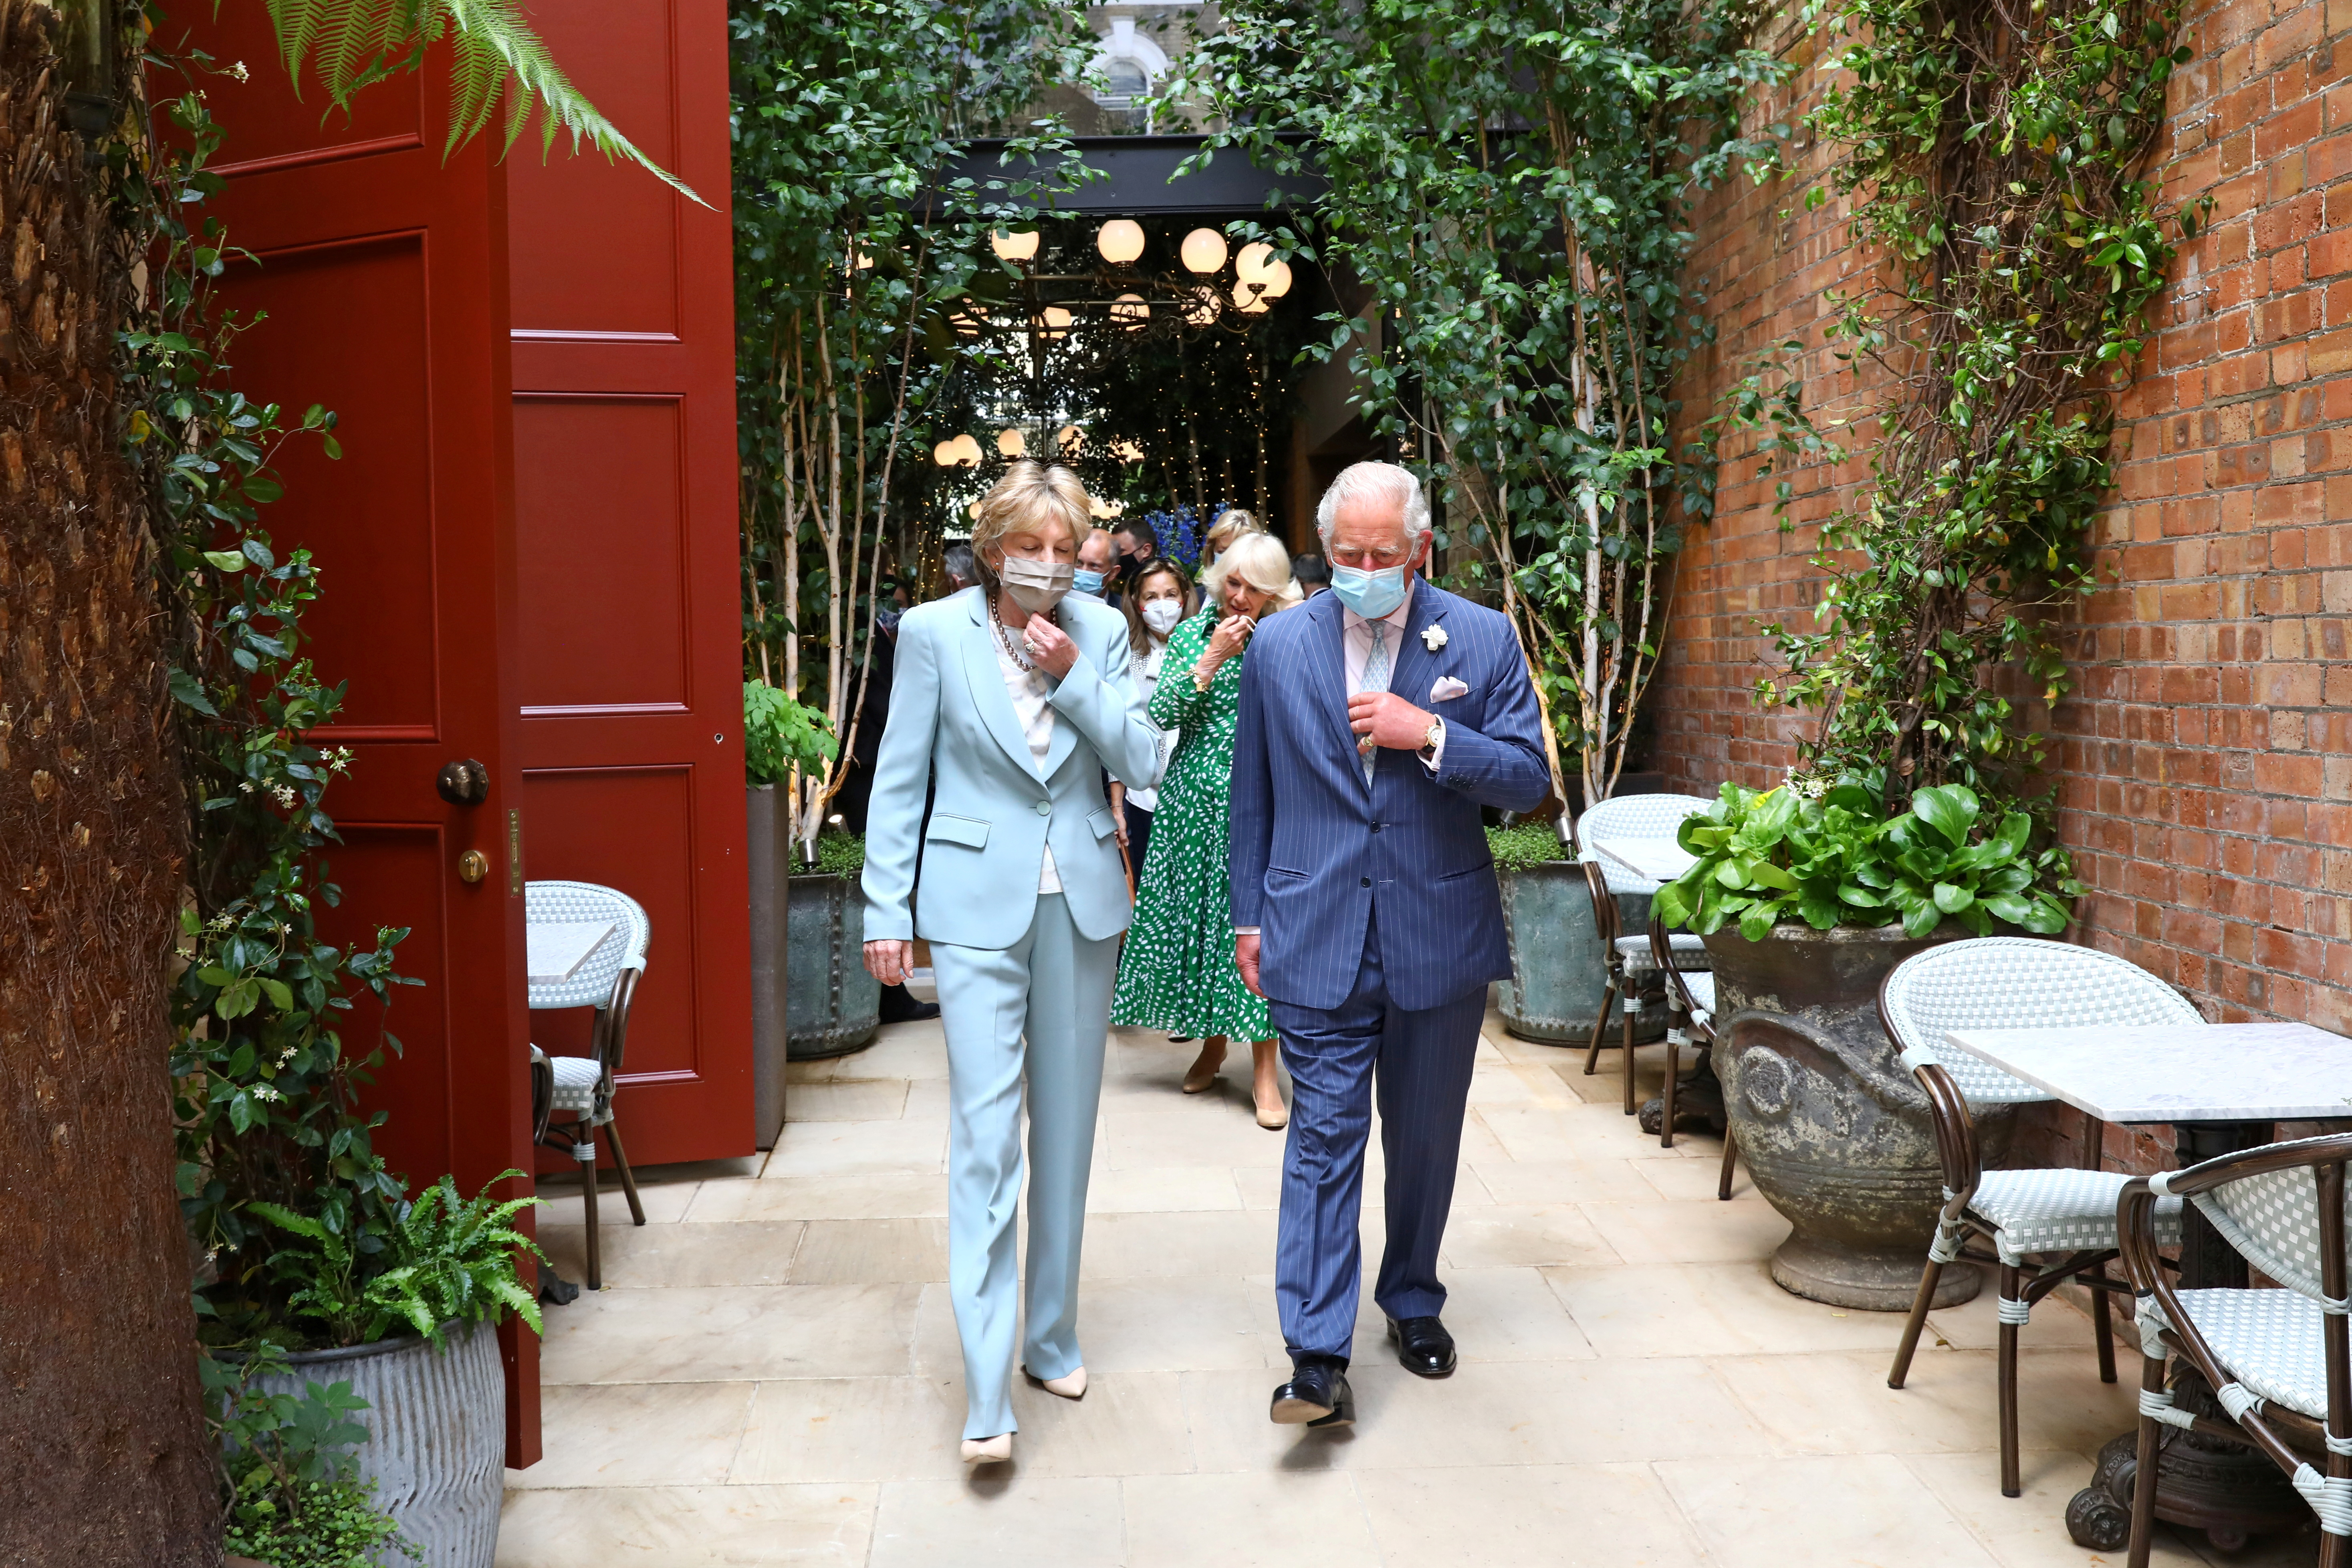 Britain's Prince Charles and Camilla, Duchess of Cornwall, walk with Lady Madeleine Lloyd Webber during a visit to Theatre Royal in London, Britain June 23, 2021. Tim P. Whitby/Pool via REUTERS